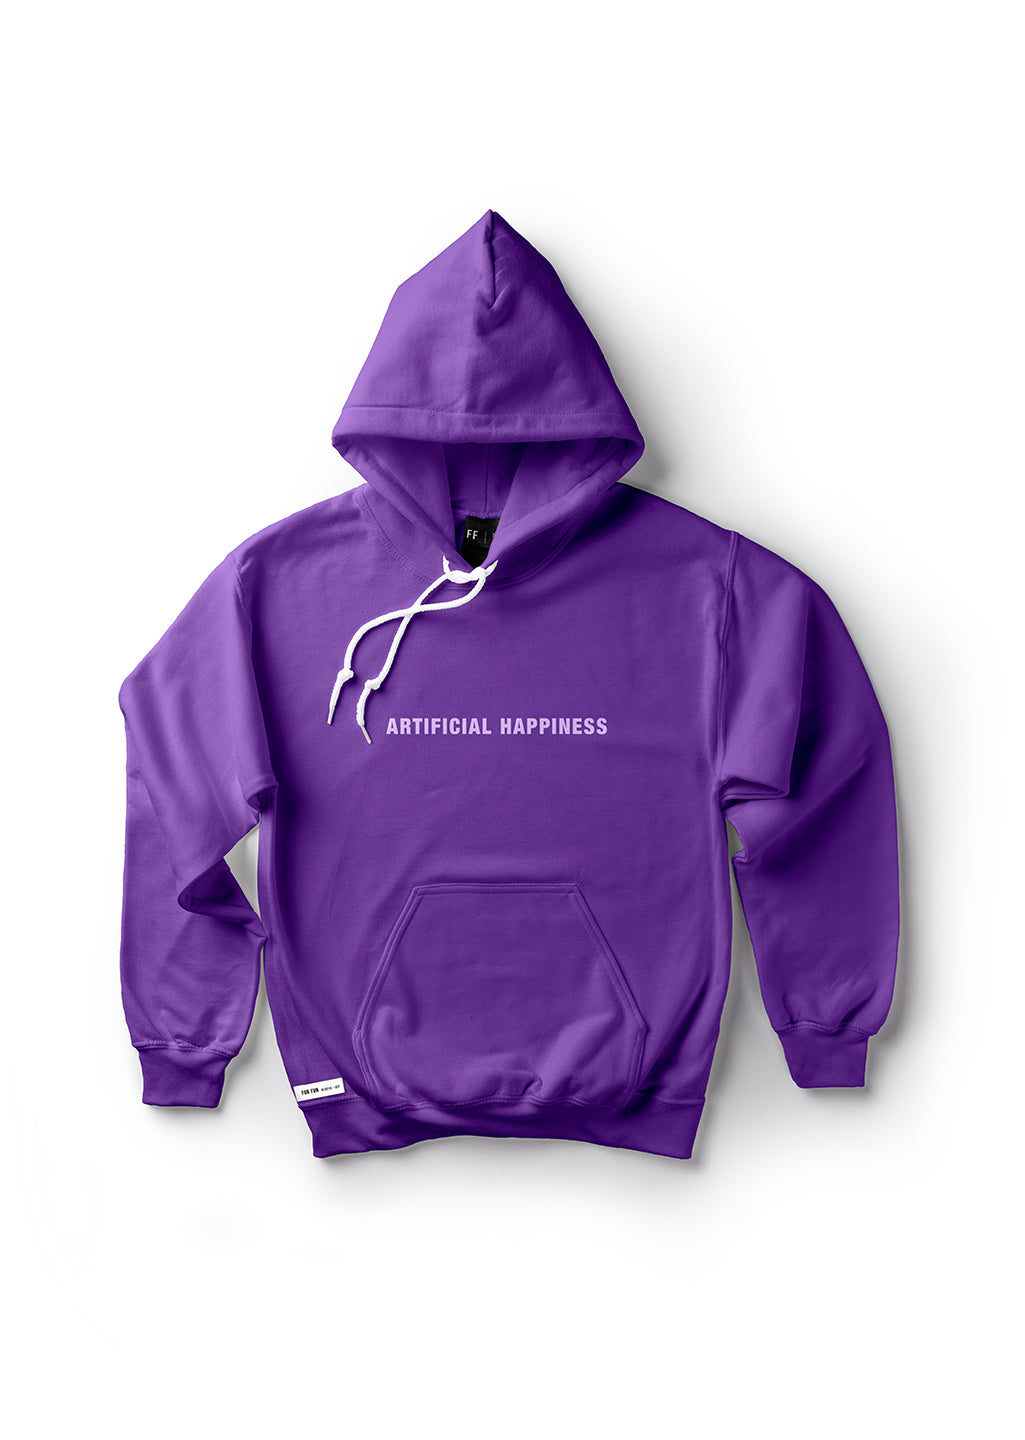 Artificial Happiness / Unisex Hoodie (Purple)